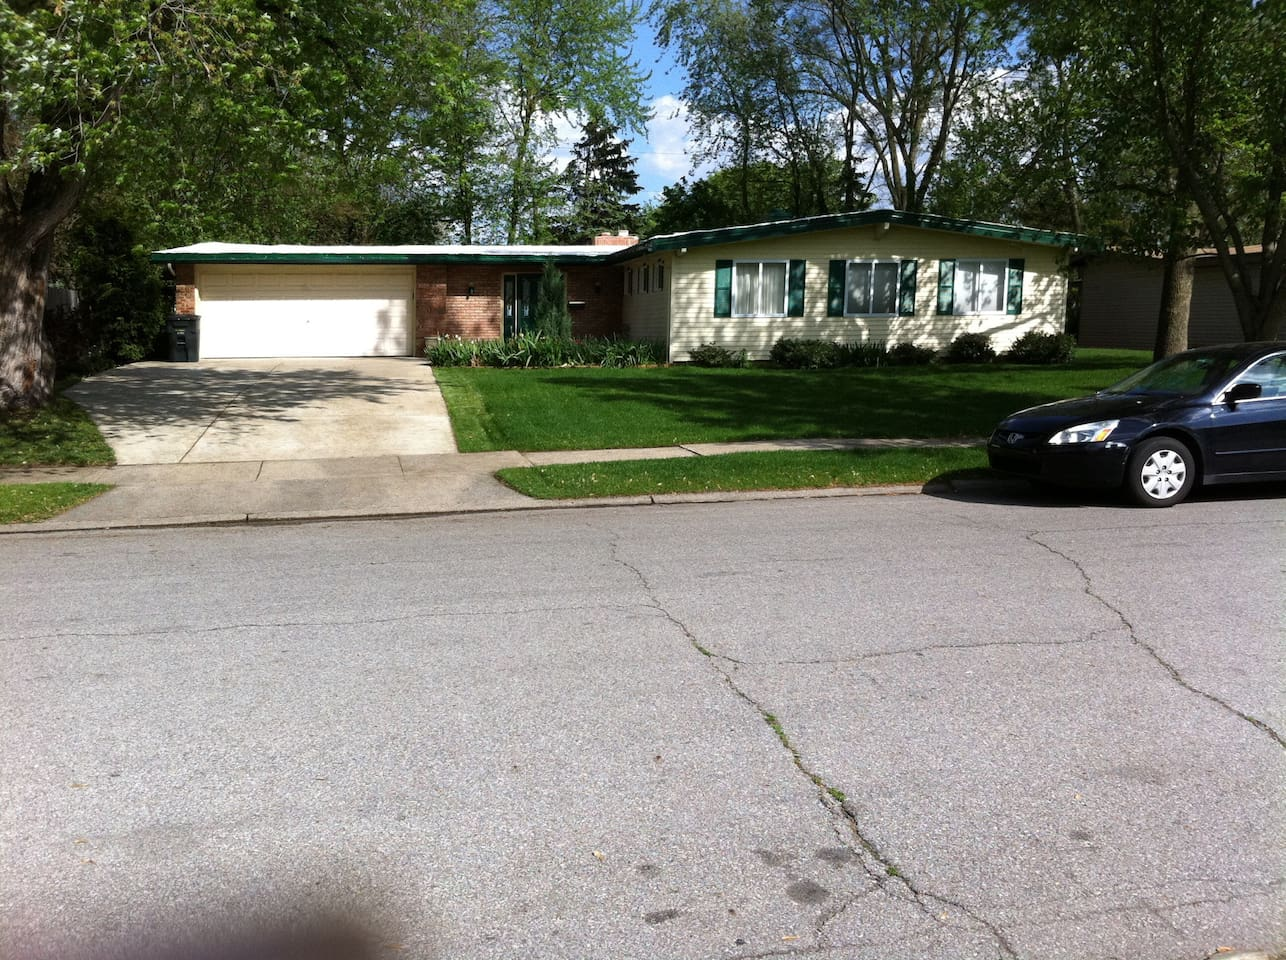 Our home is a 2580 sq. ft. ranch with a large front yard, large fenced in back yard and patio with views of small lake.